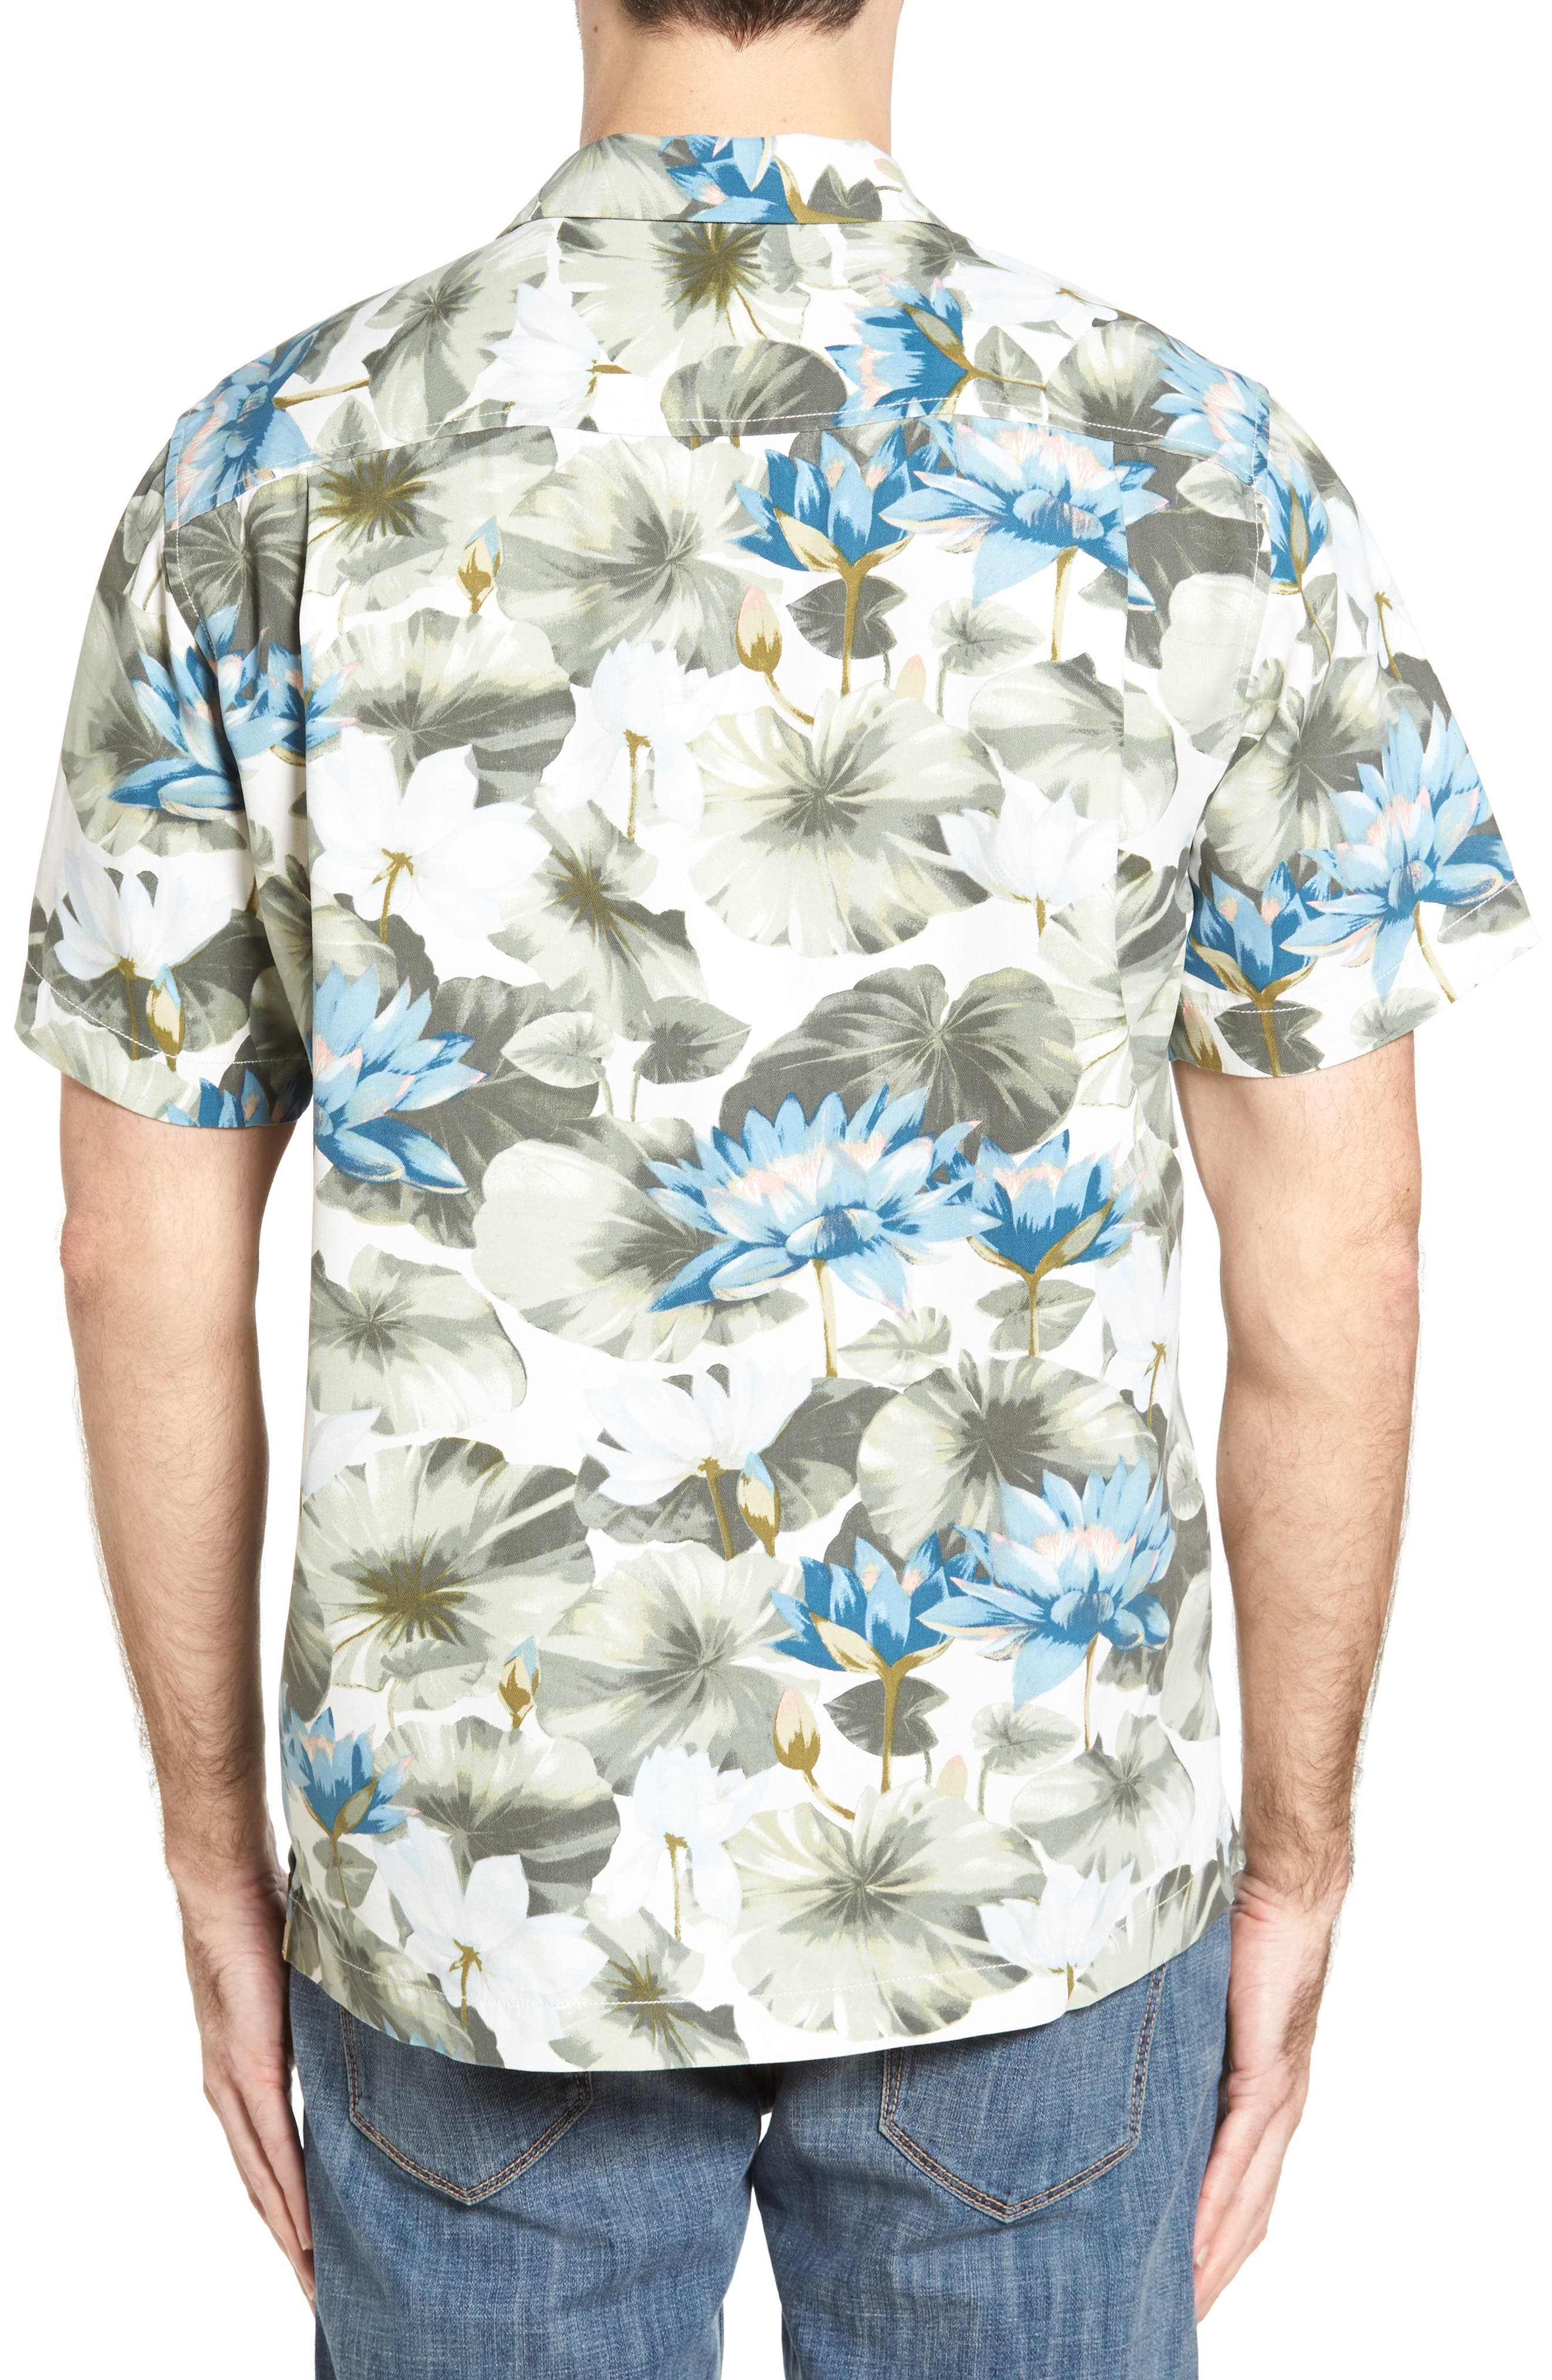 Garden of Hope and Courage Silk Camp Shirt,                             Alternate thumbnail 2, color,                             100